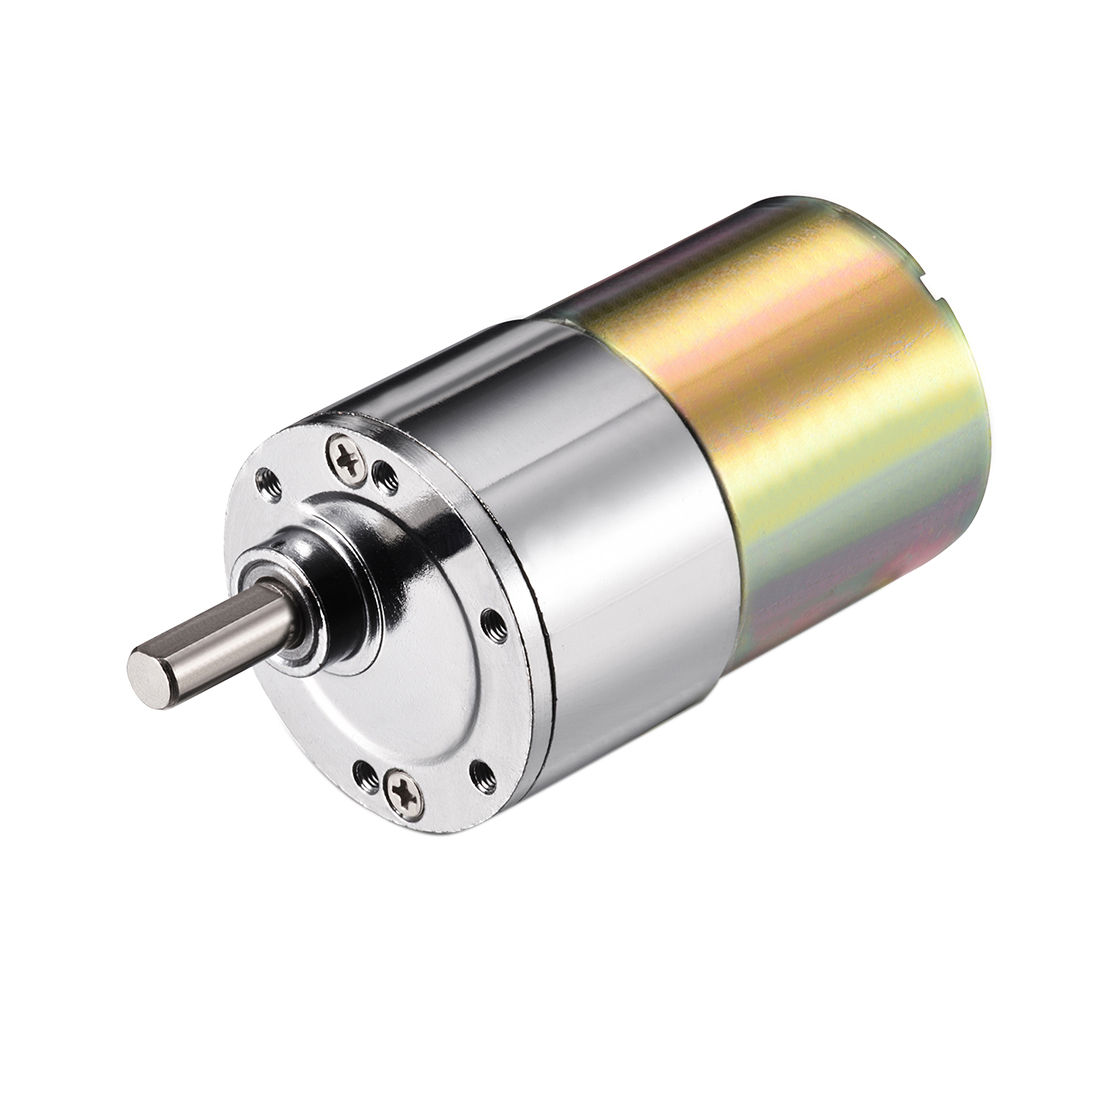 DC 24V 300RPM Micro Gear Box Motor Speed Reduction Electric Gearbox Eccentric Output Shaft